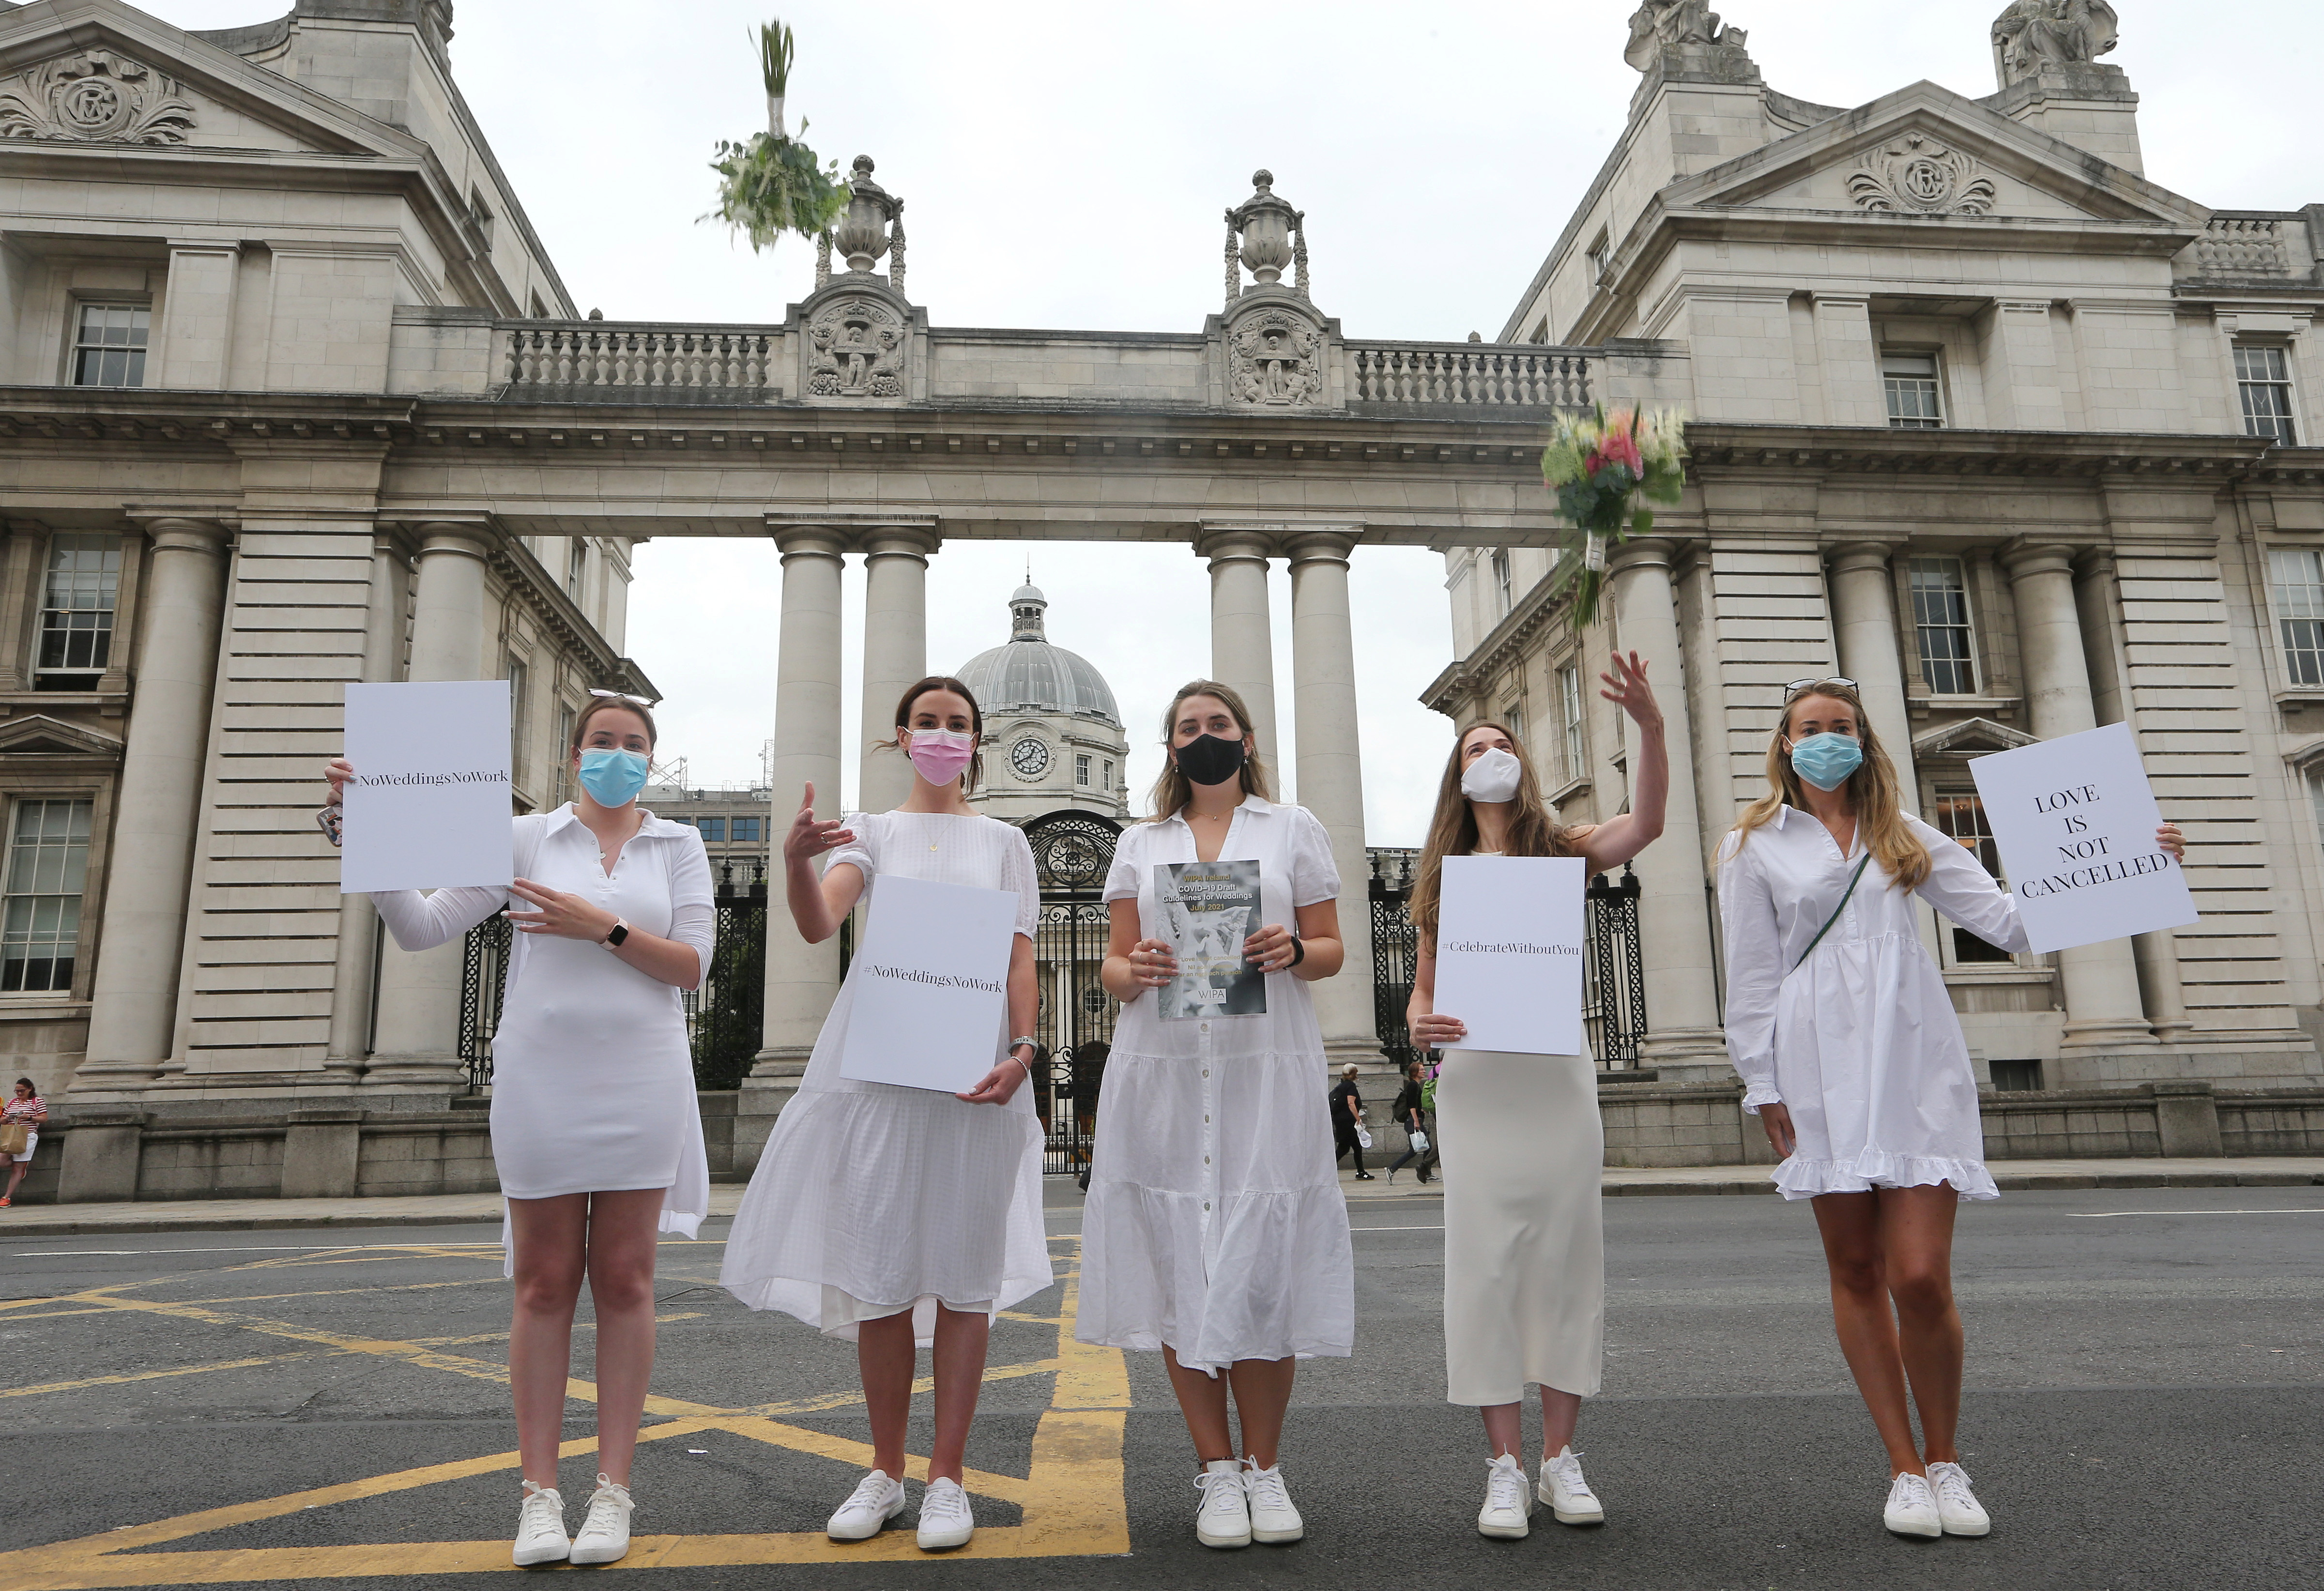 Orla Hogan, Ali O'Mara, Brana Culle, Anna Killeen and Orla O'Huadaigh hold up signs at a protest march to Government Buildings in a bid to allow up to 100 guests to attend weddings this year in Dublin, Ireland, July 27, 2021. REUTERS/Lorraine O'Sullivan